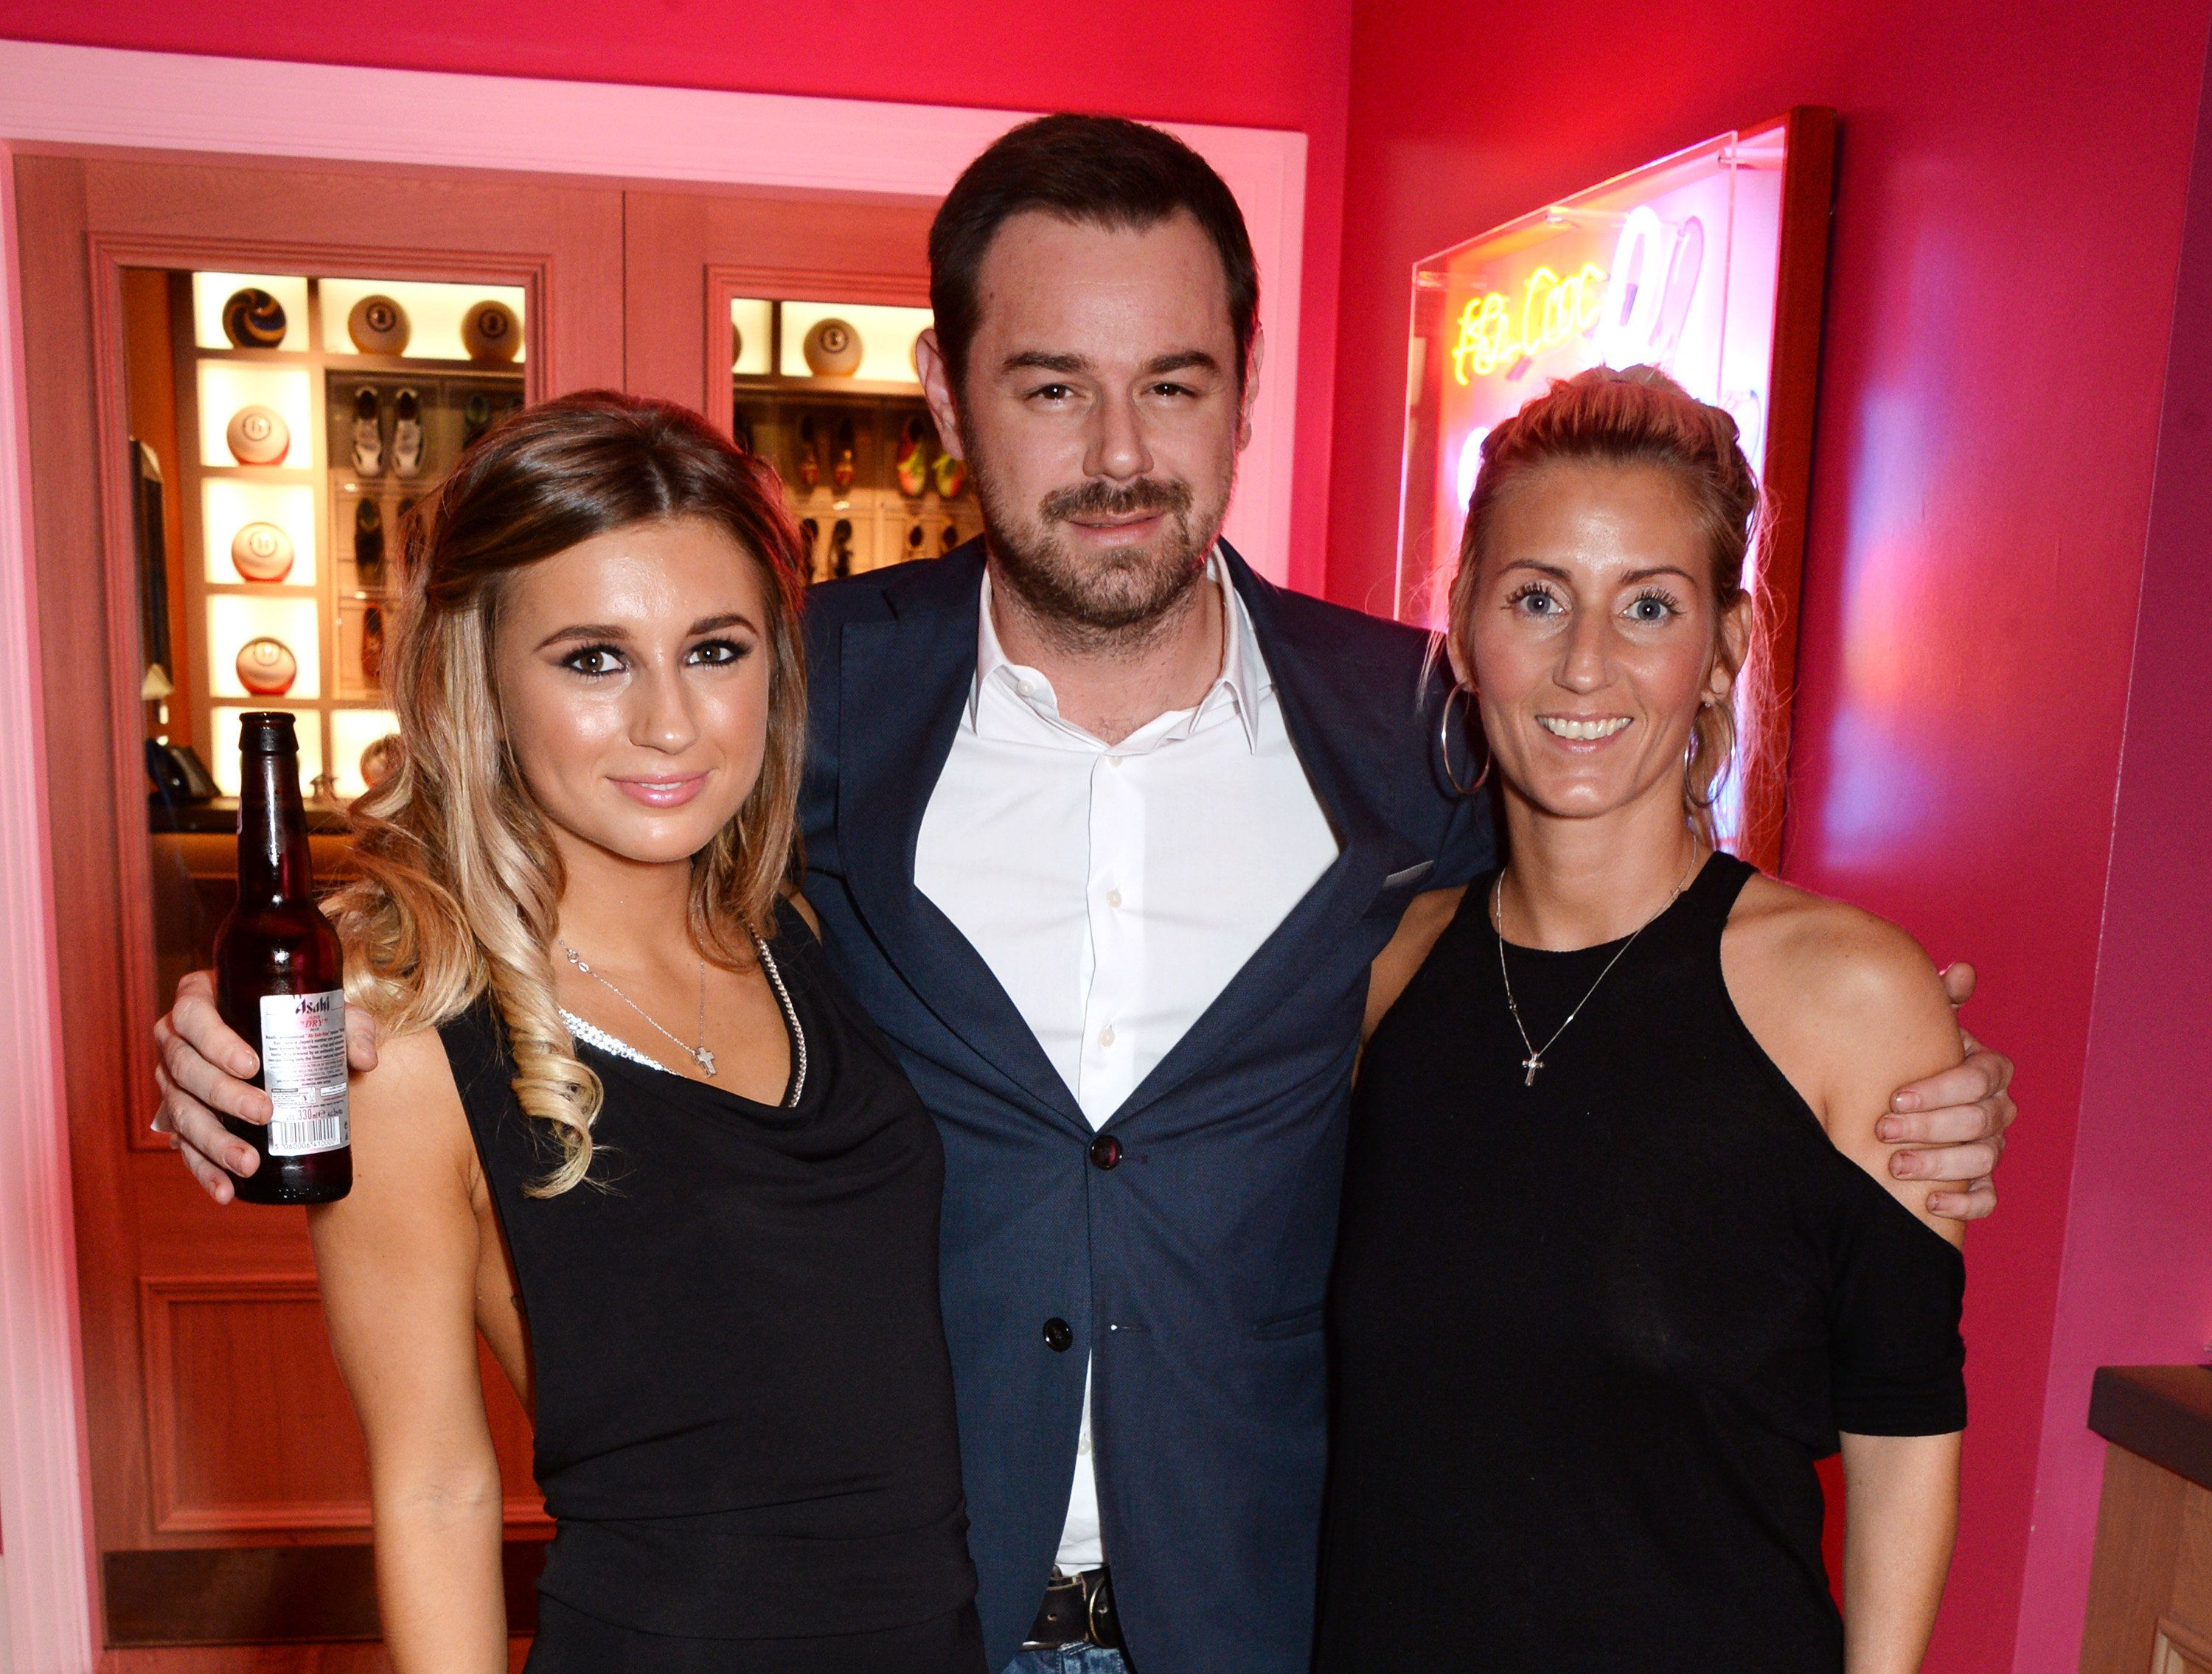 Danny Dyer Finally Breaks His Silence On Daughter's 'Love Island' Appearance